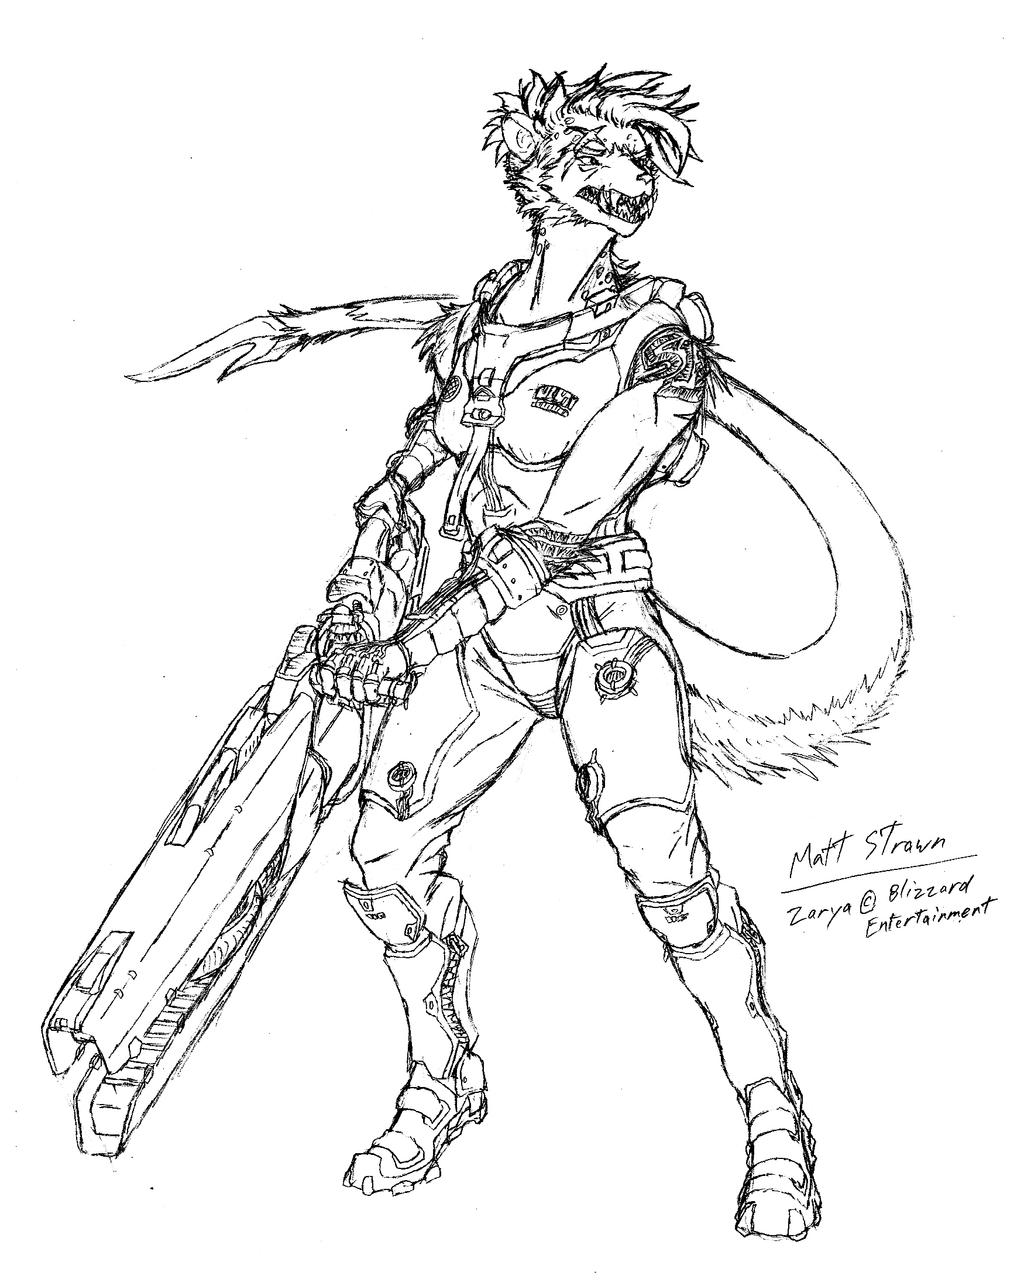 Ritka as zarya overwatch fan art by faullyn on deviantart for Overwatch genji coloring pages